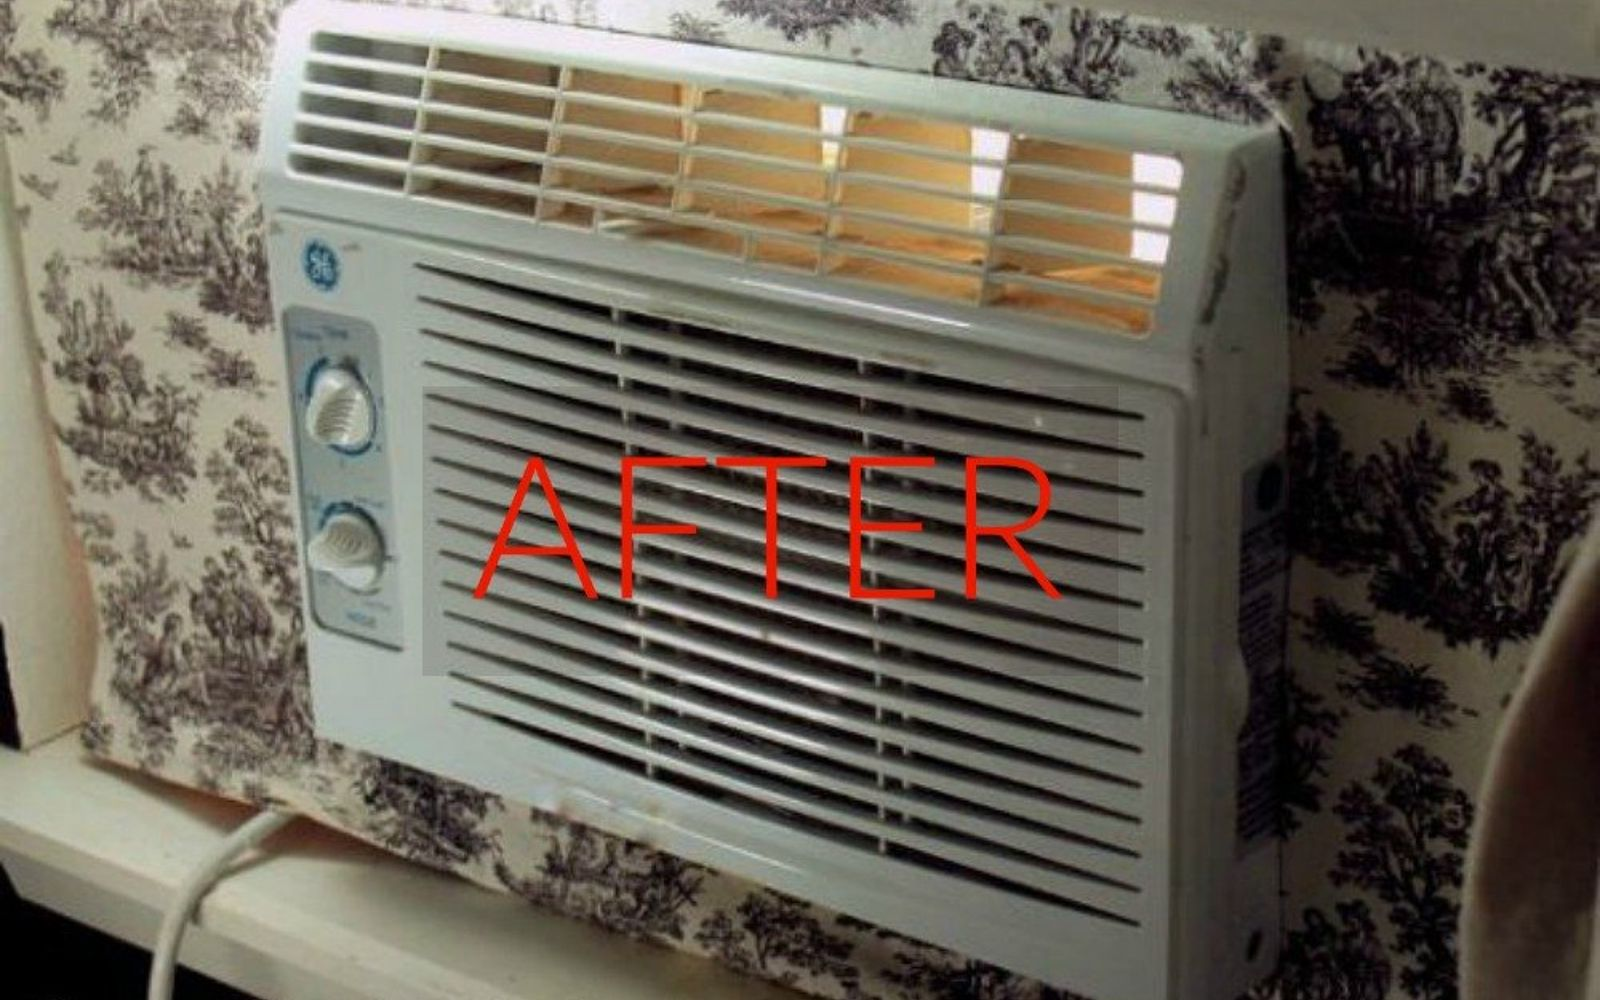 s don t buy new appliances these 9 diy hacks are brilliant, appliances, After A stylish framed surrounding